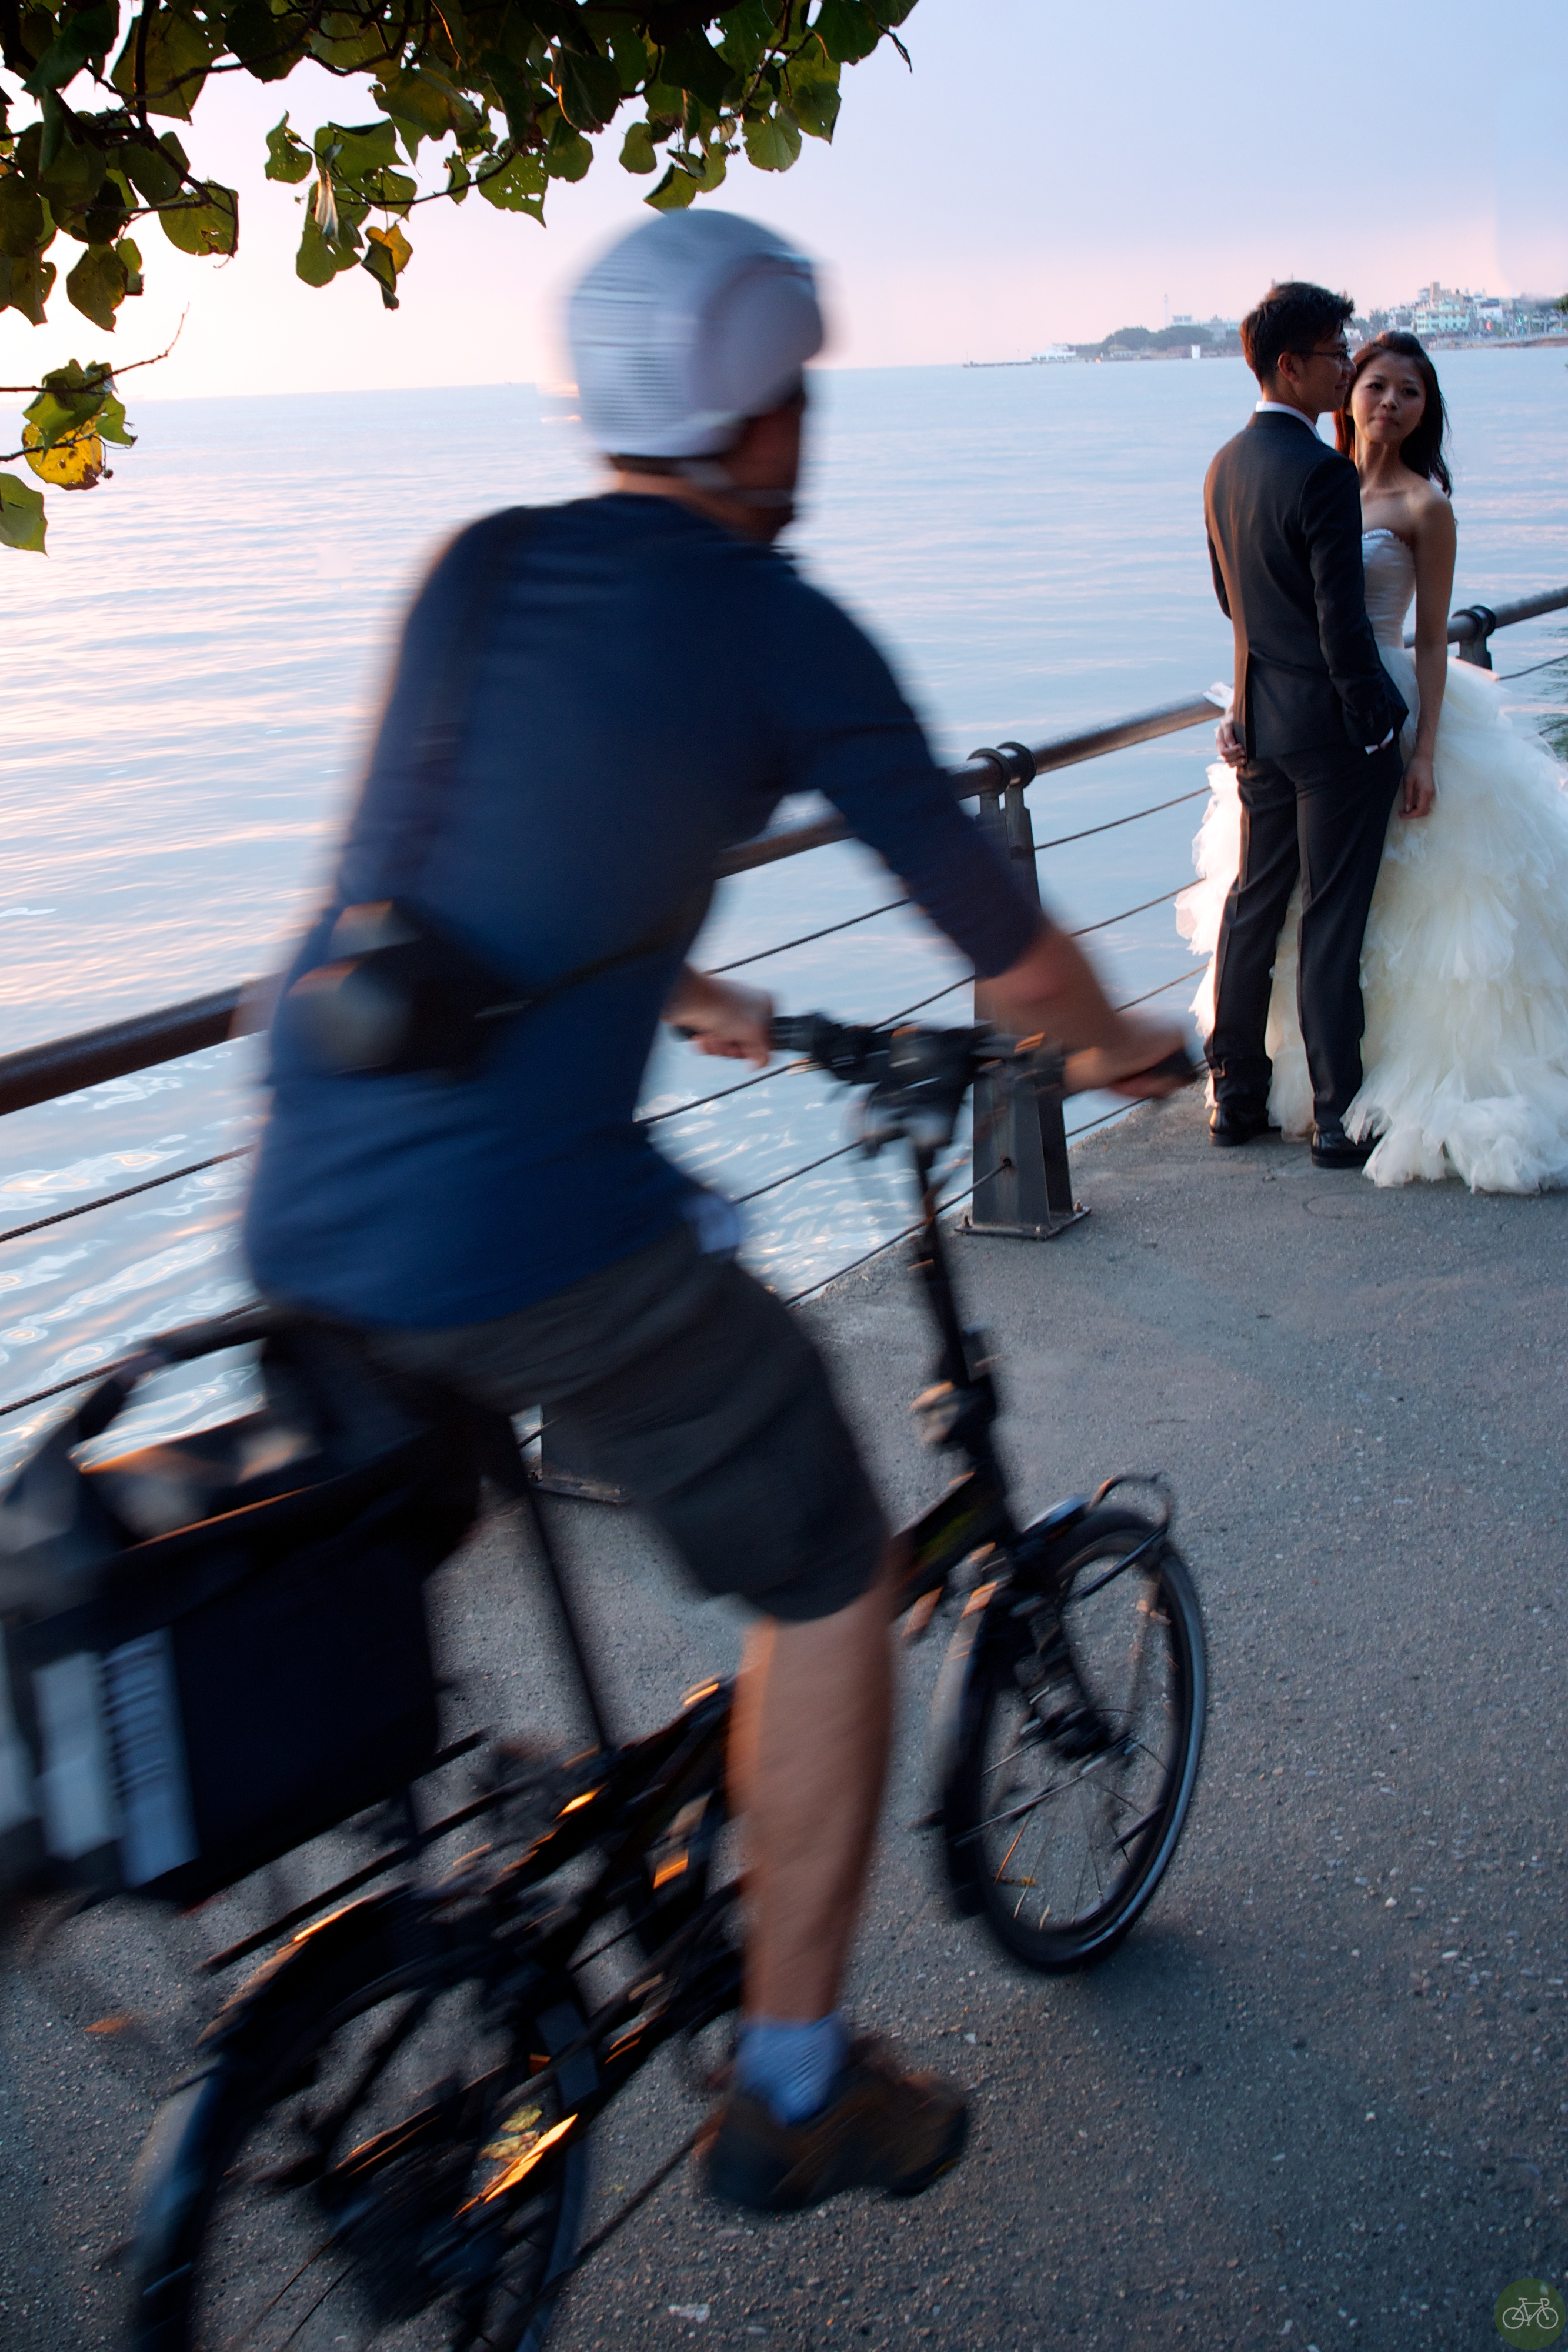 a Taipei Bride on the Boardwalk